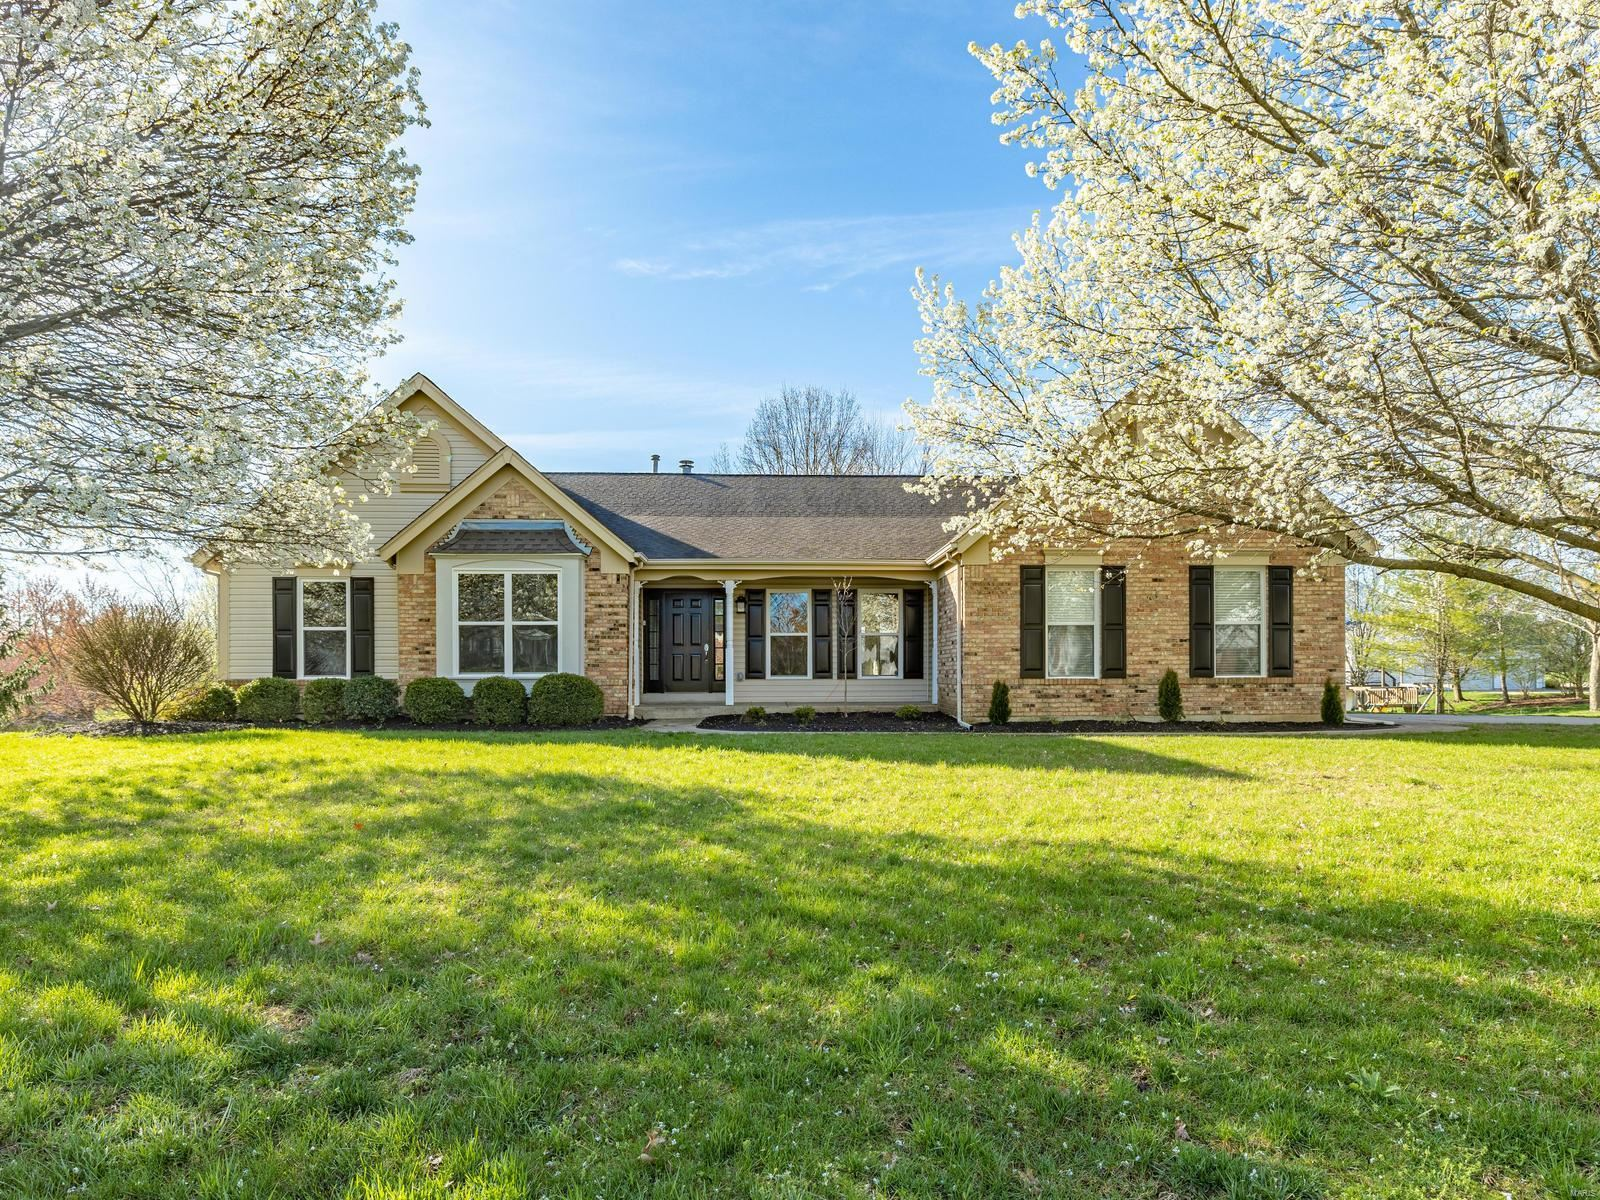 5885 Canterfield, Weldon Spring, MO 63304 - MLS#: 20020660